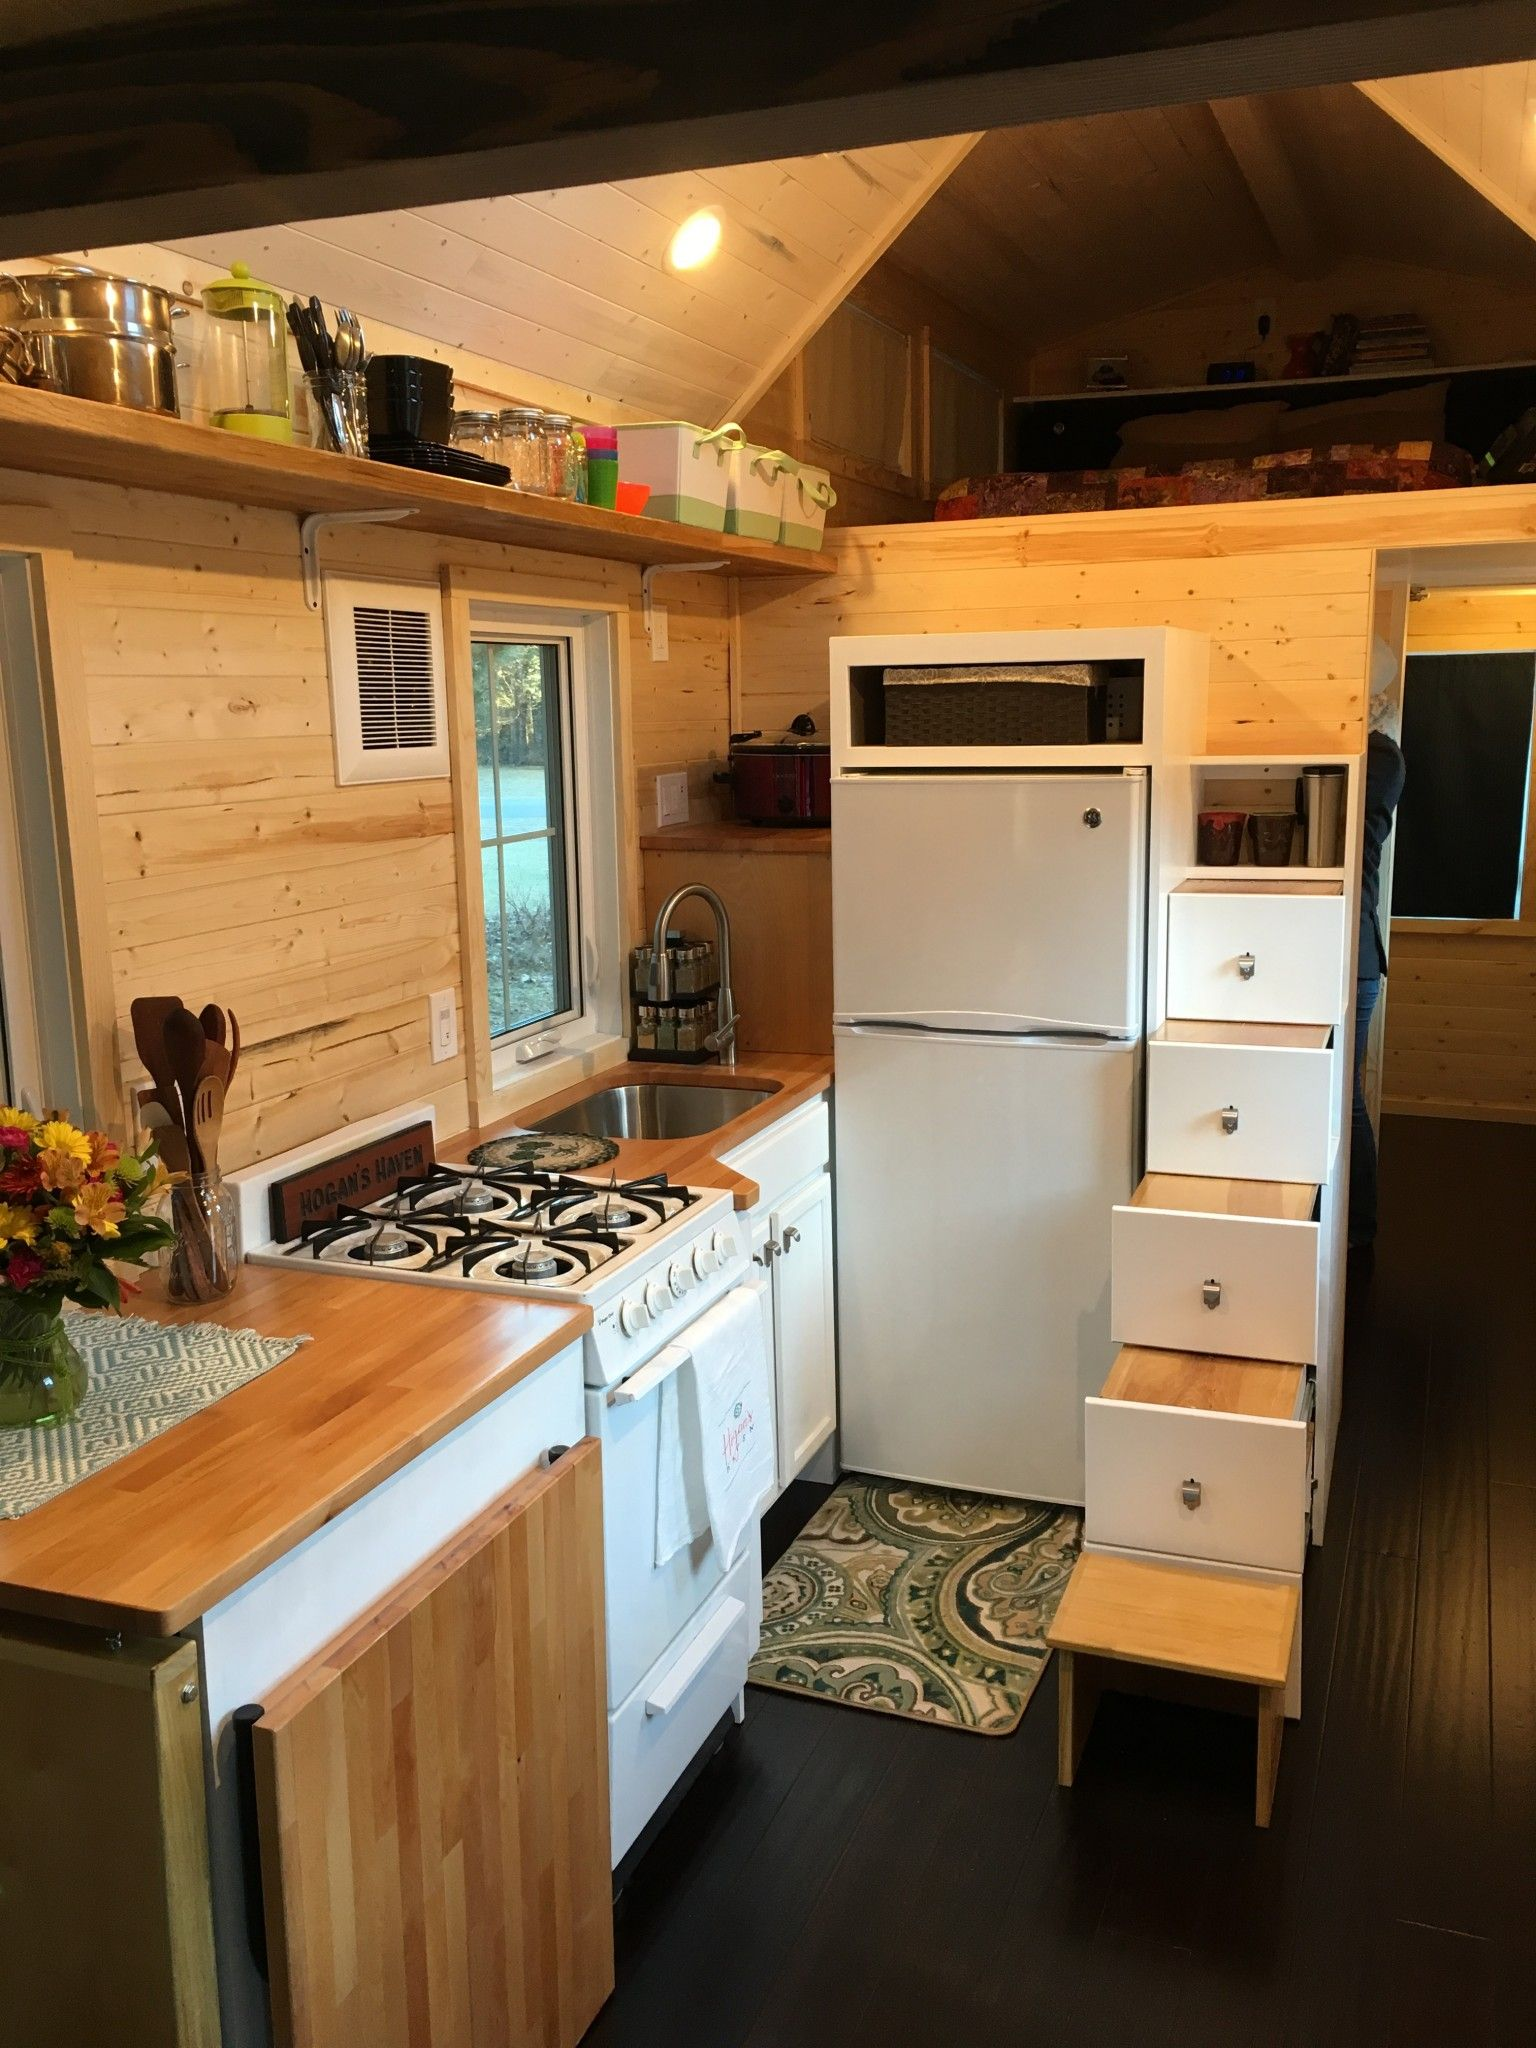 View toward kitchen the alpha tiny home by new frontier tiny homes - Tiny House Completed Kitchen As Seen On Hgtv Tiny House Big Living